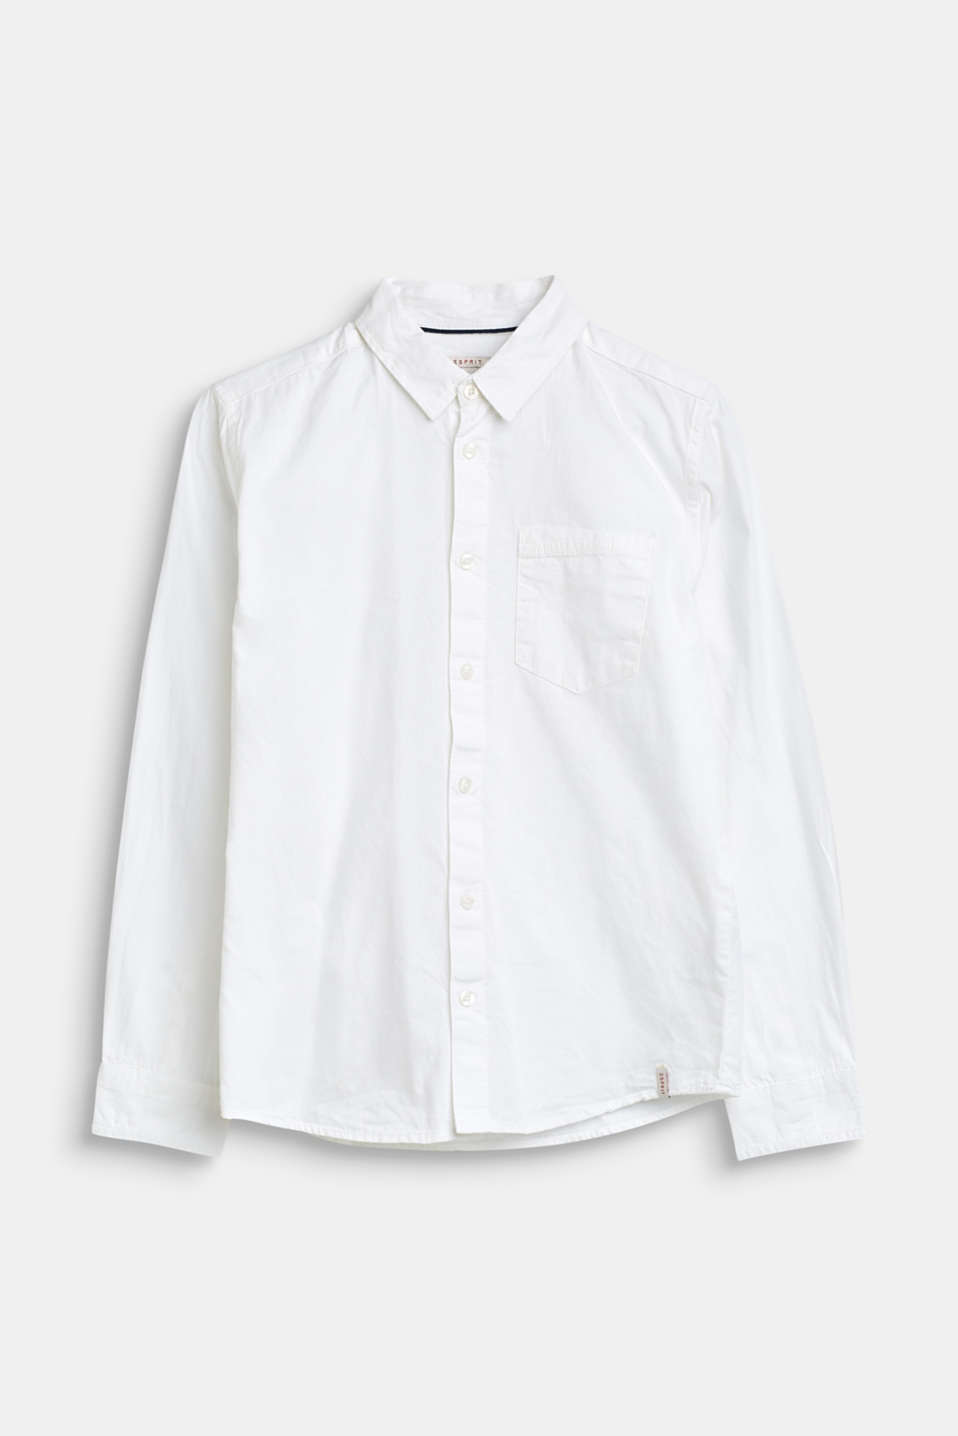 Esprit - Basic shirt in 100% cotton